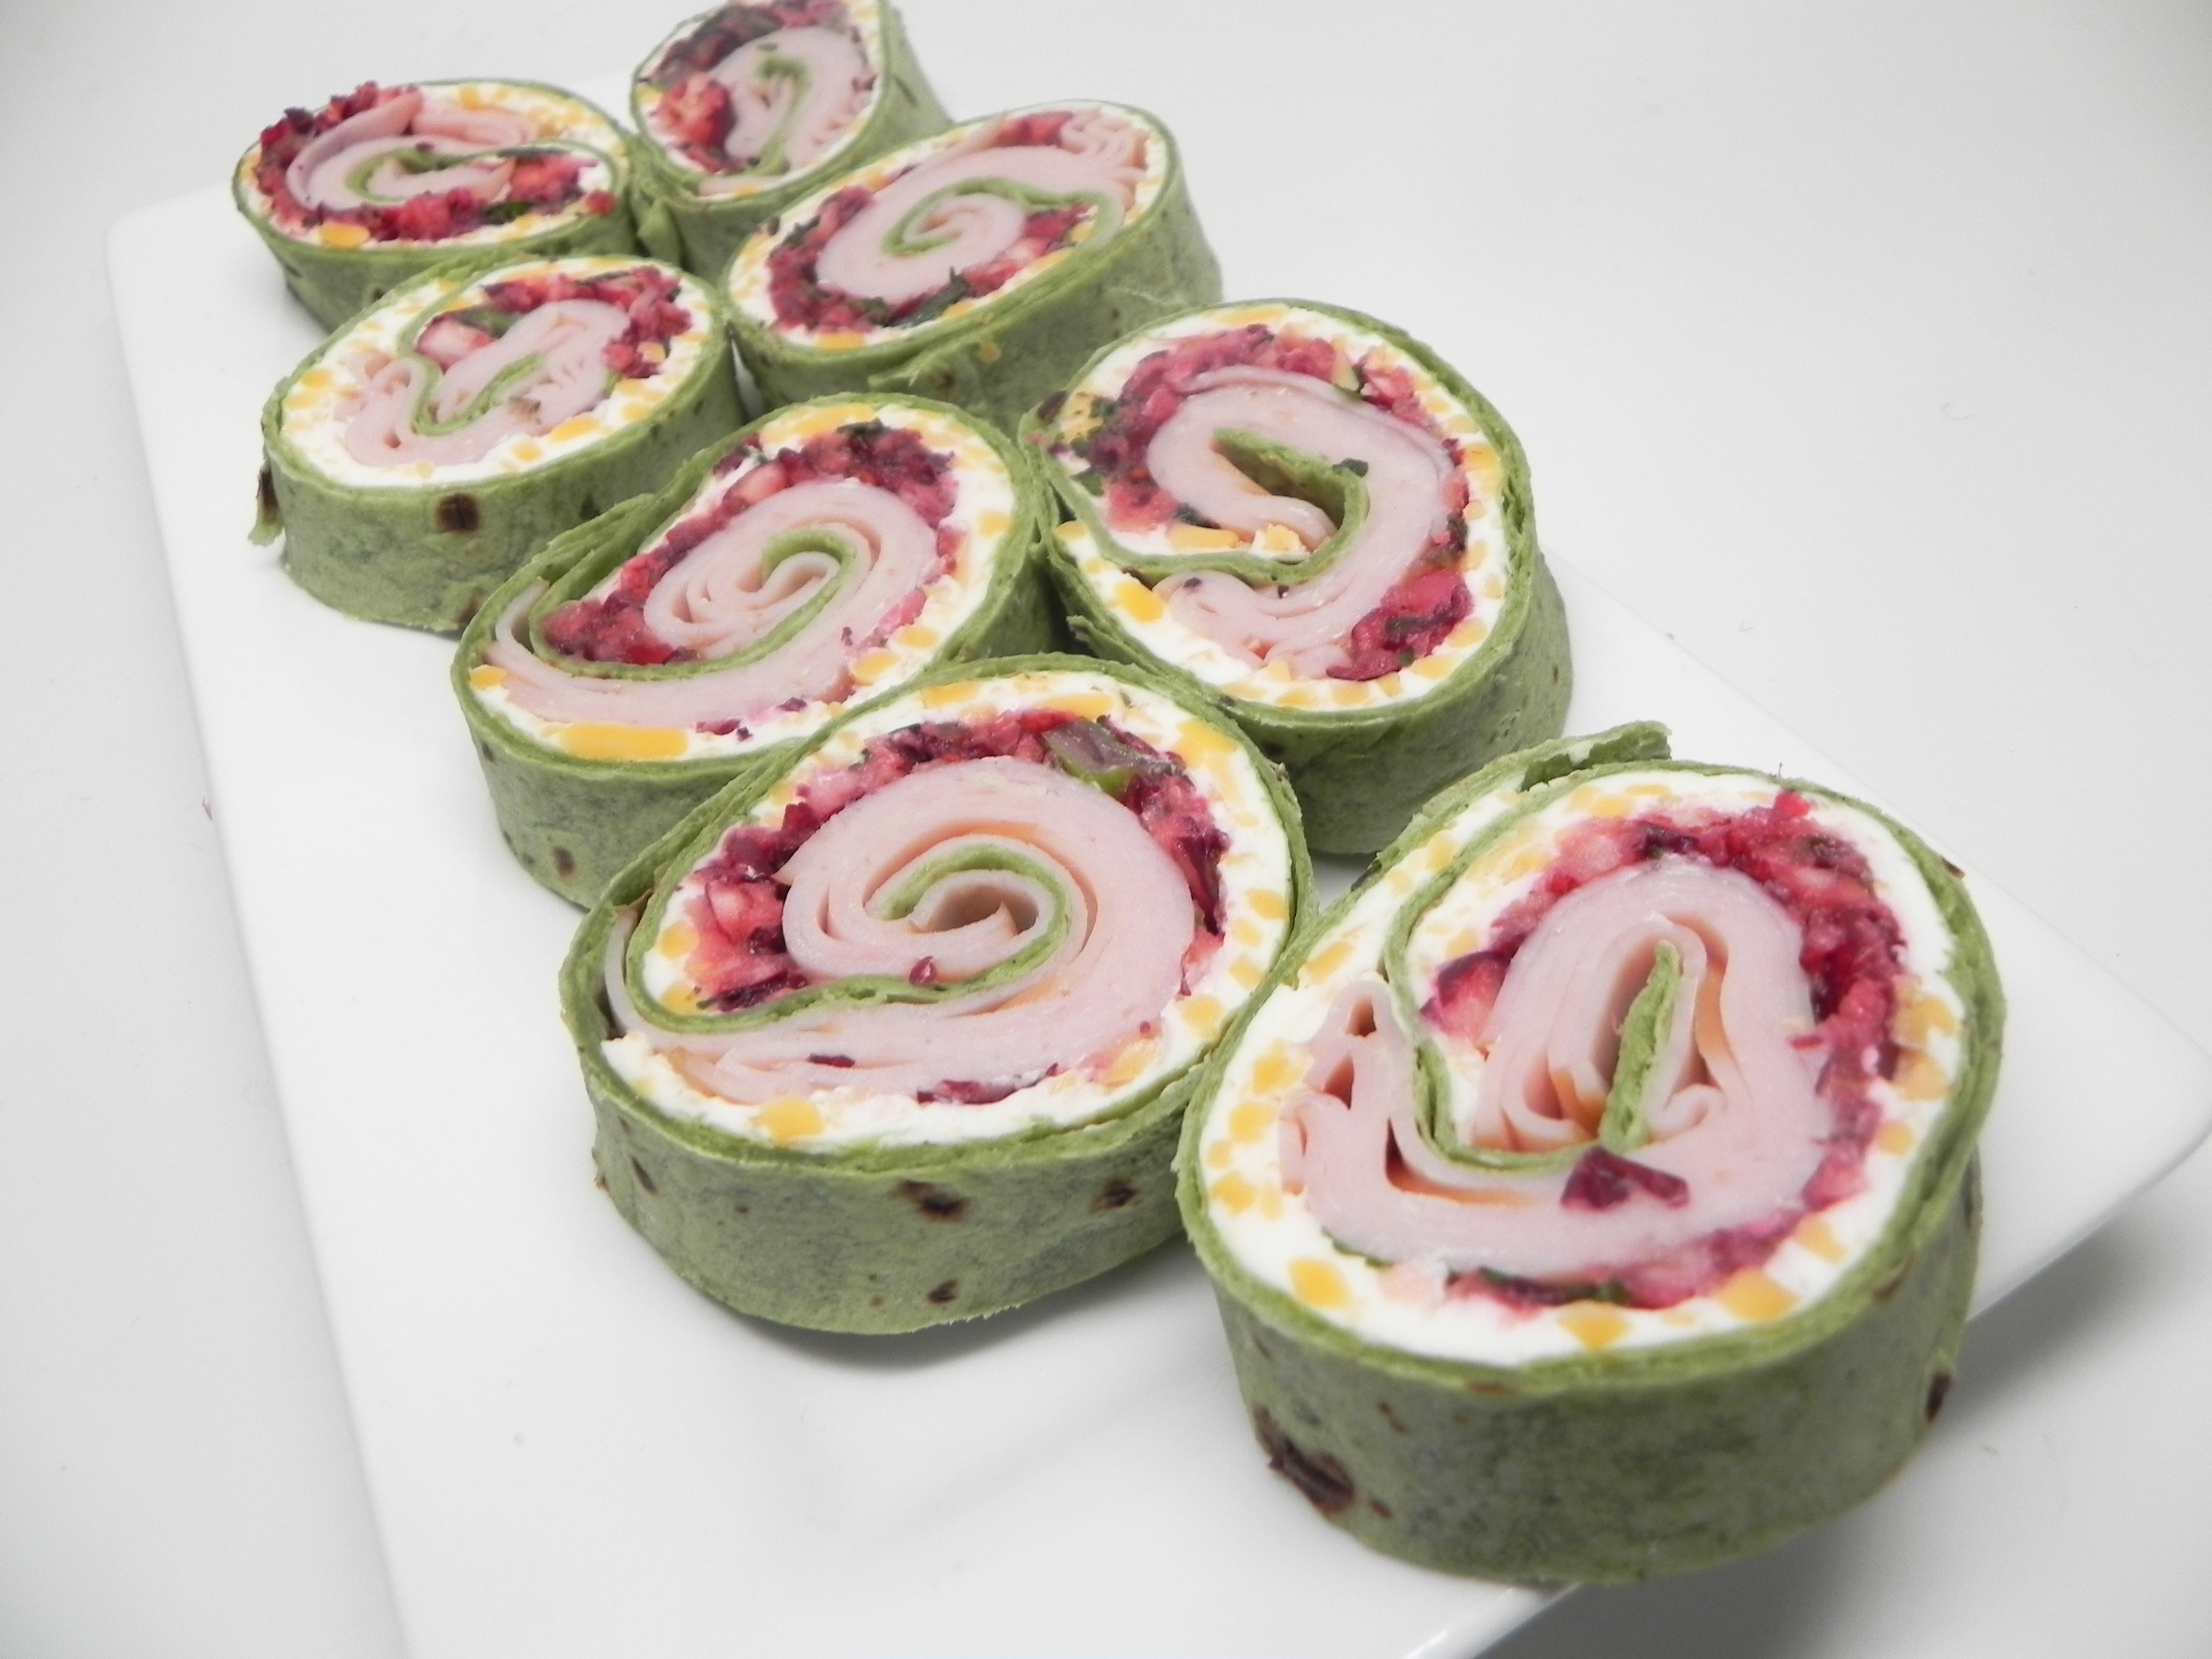 Spicy Turkey and Cranberry Pinwheels Soup Loving Nicole